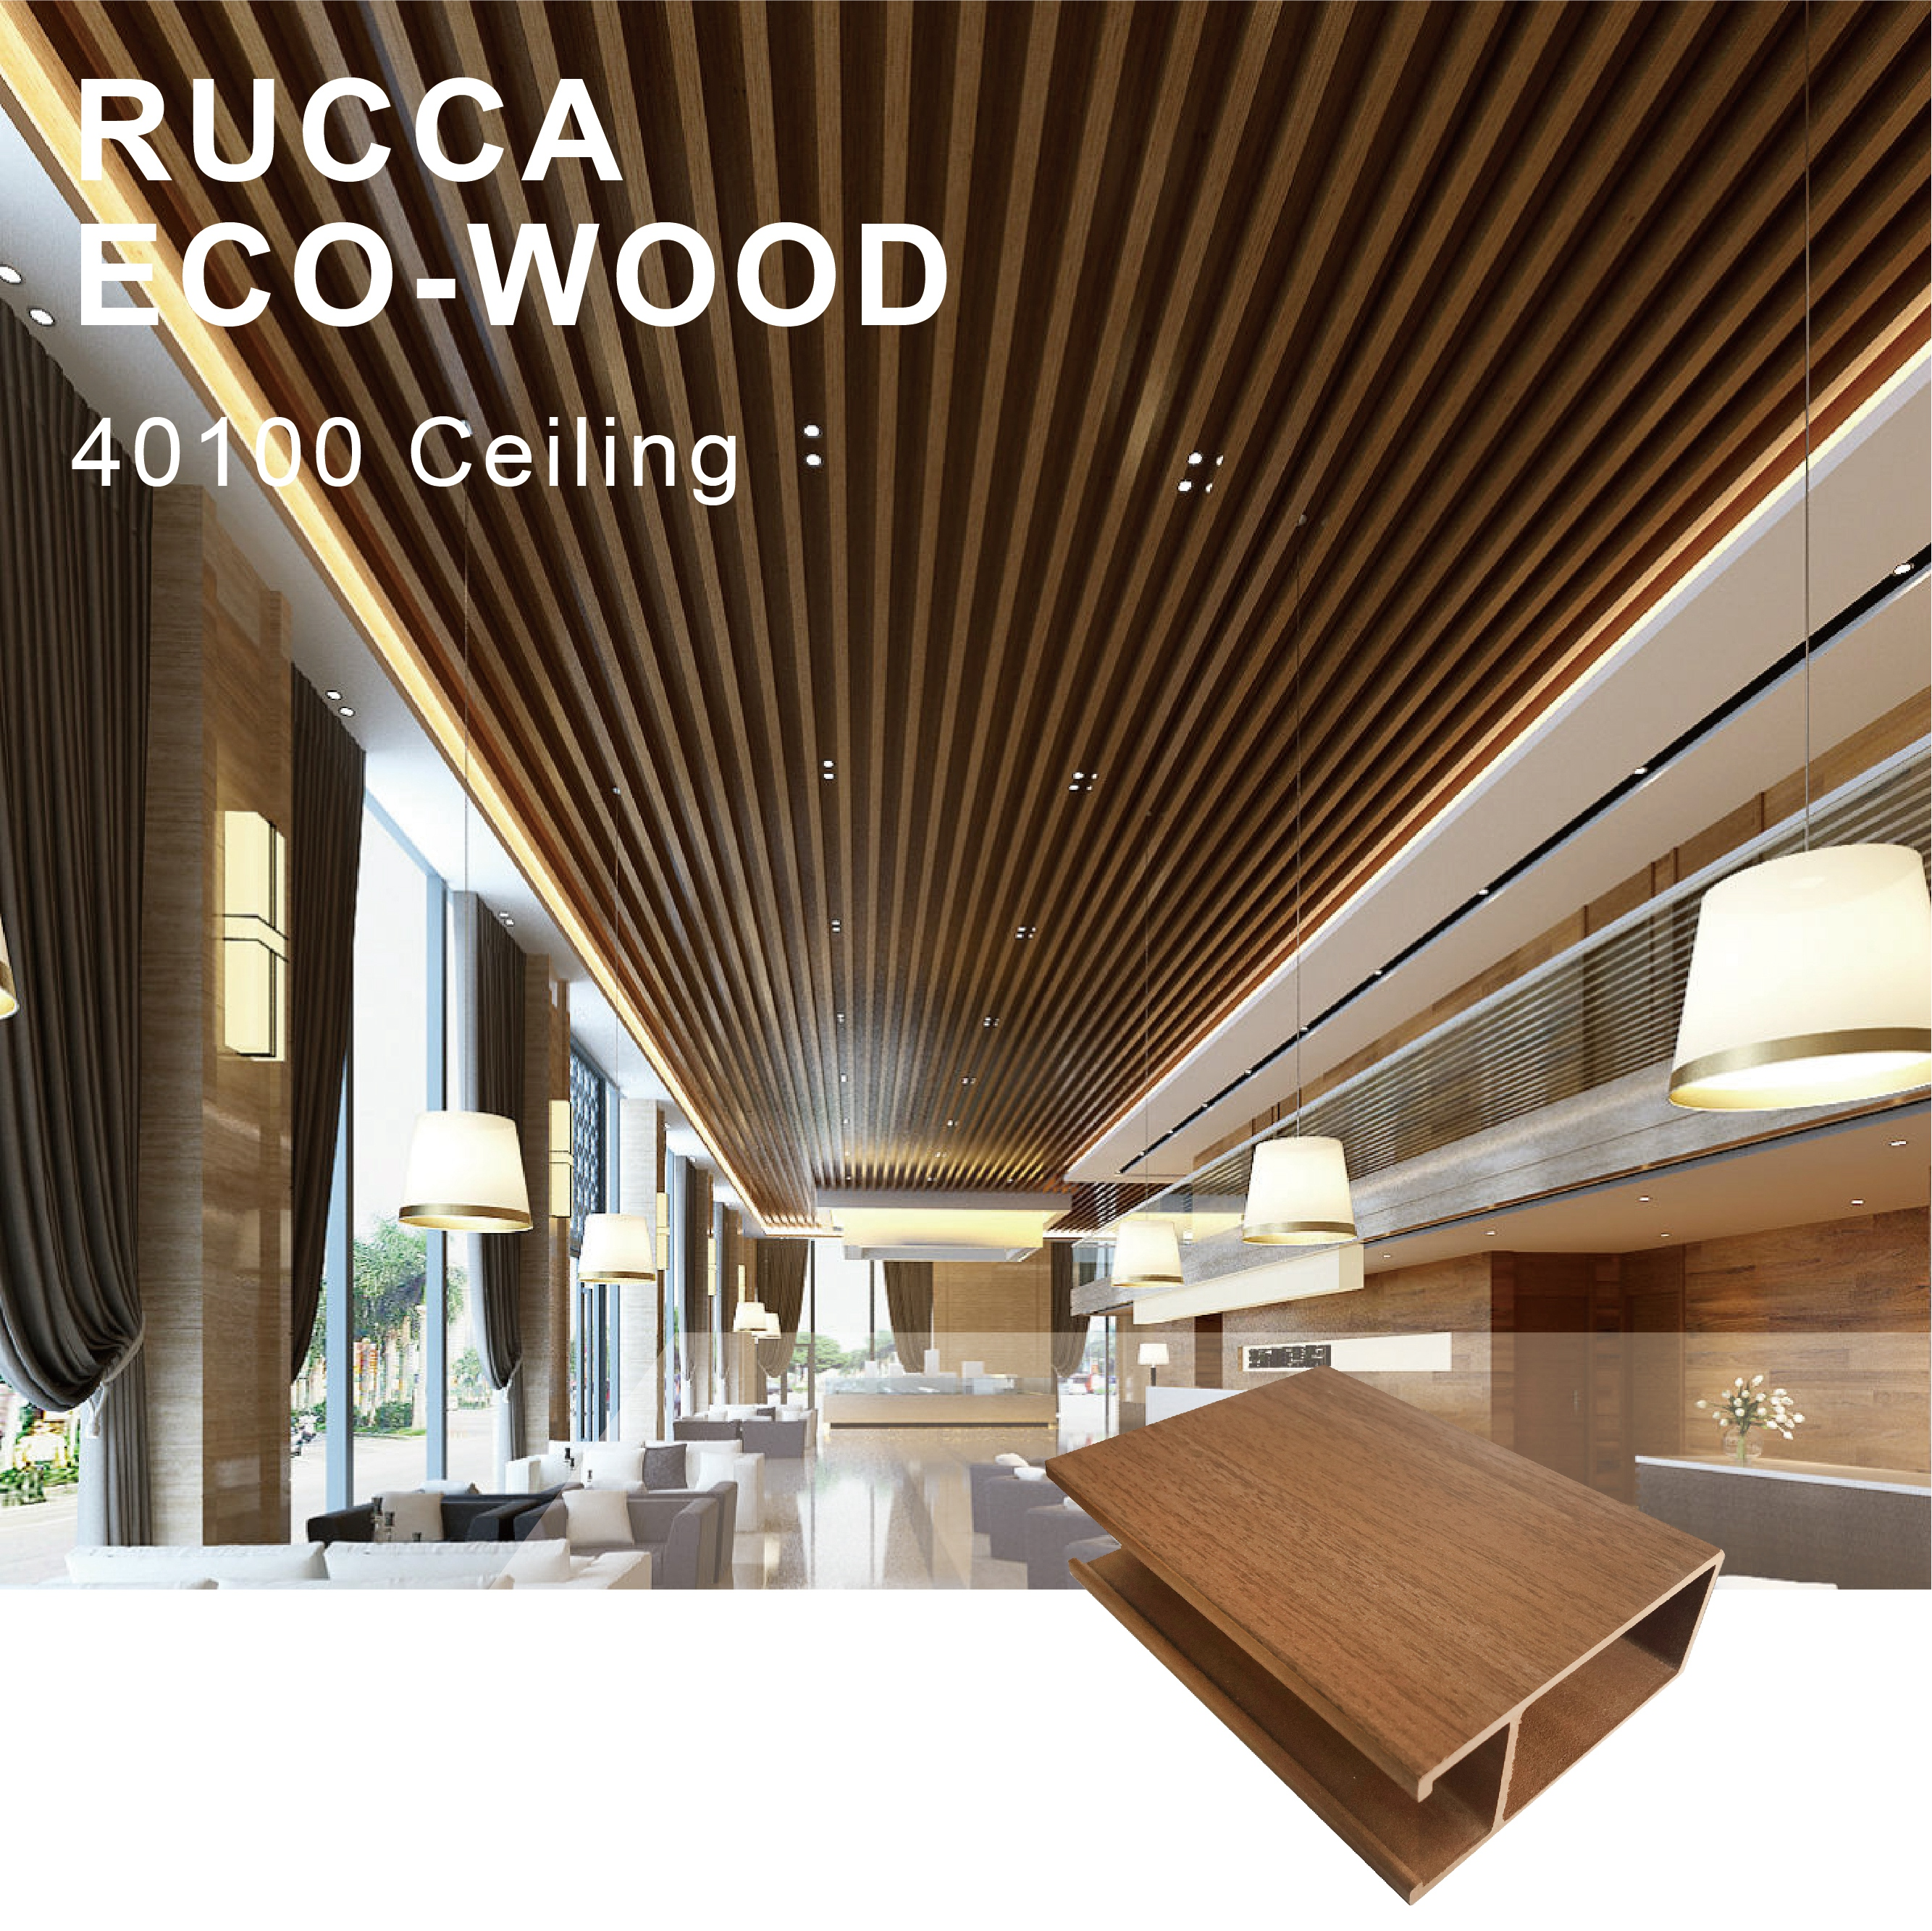 Image of: Rucca Wpc Outdoor Faux Wood Ceiling Panel False Design Decorative Plastic Ceiling Tiles 40 100mm Foshan China Buy Ceiling Outdoor Ceiling Panel Faux Wood Ceiling Panels Product On Alibaba Com